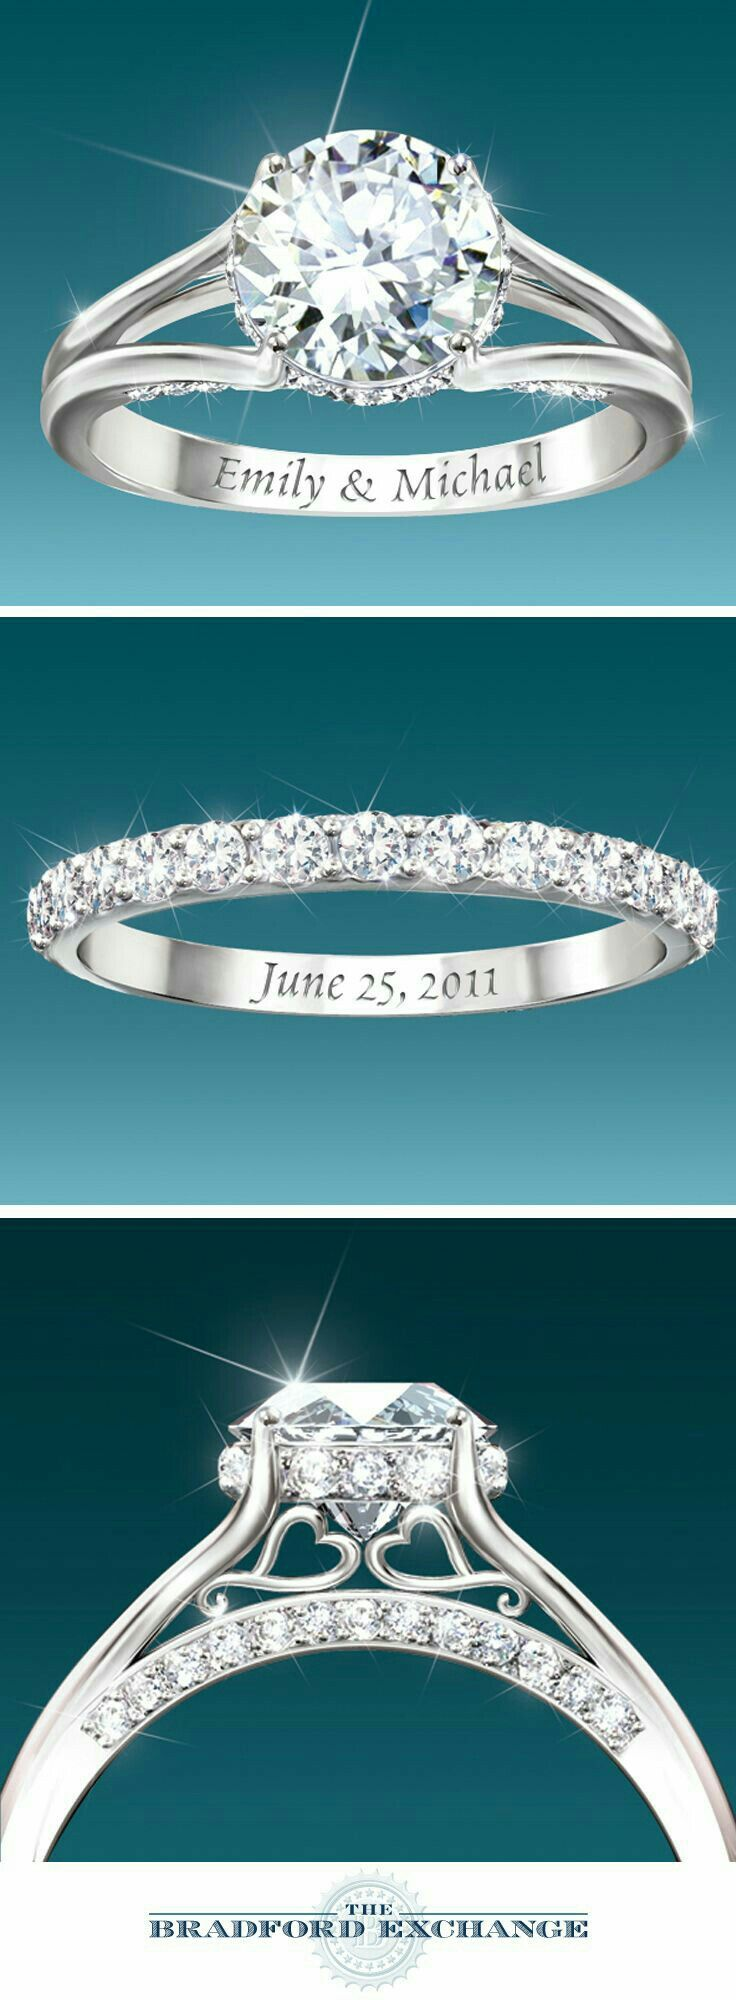 I want the middle one to be my engagement ring!